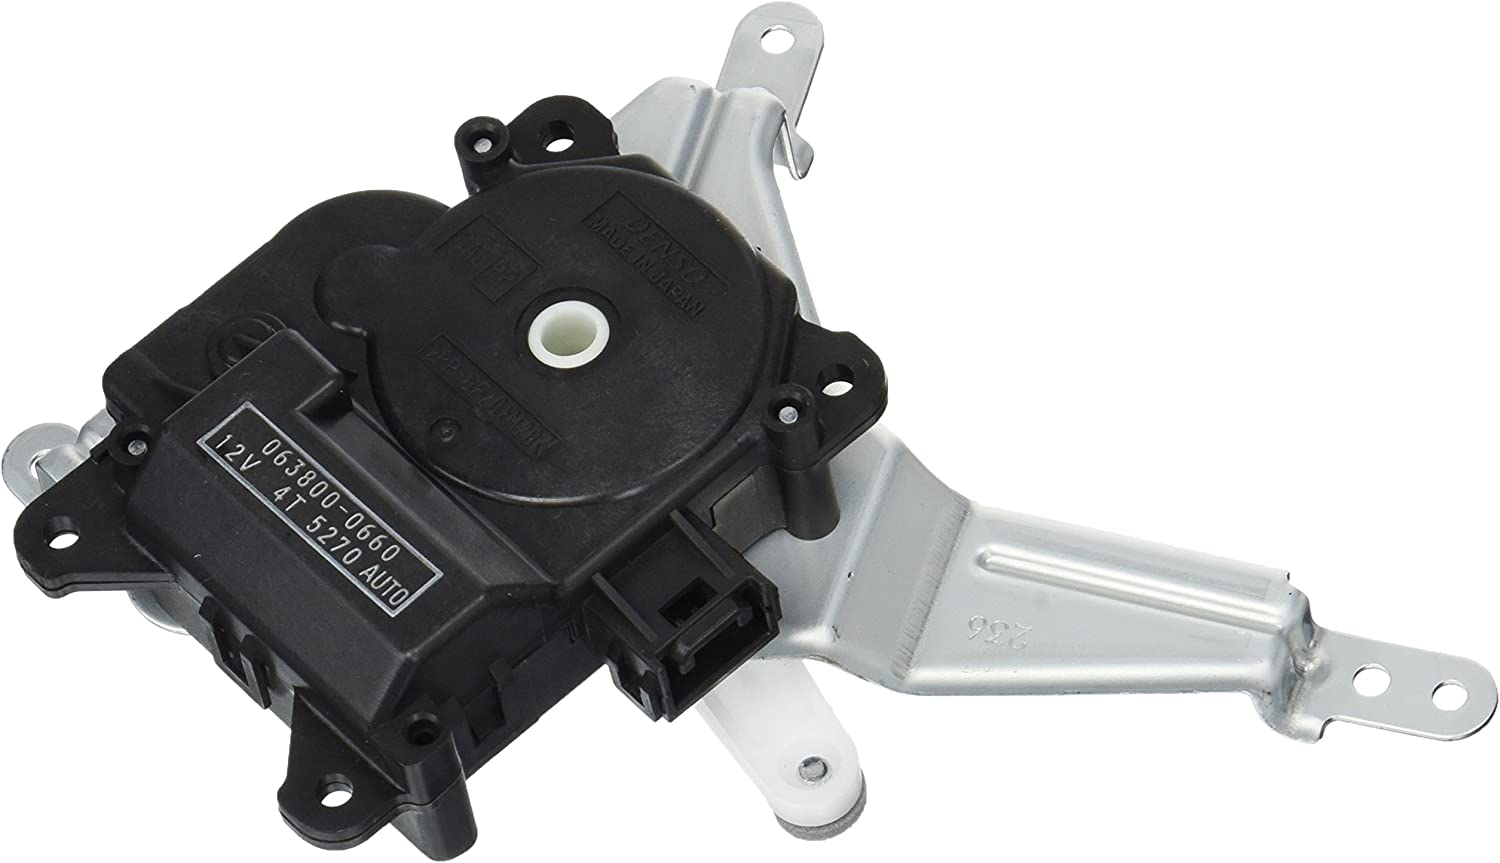 TOYOTA 87106-35180 San Diego Mall Clearance SALE! Limited time! Damper Assembly Servo Sub